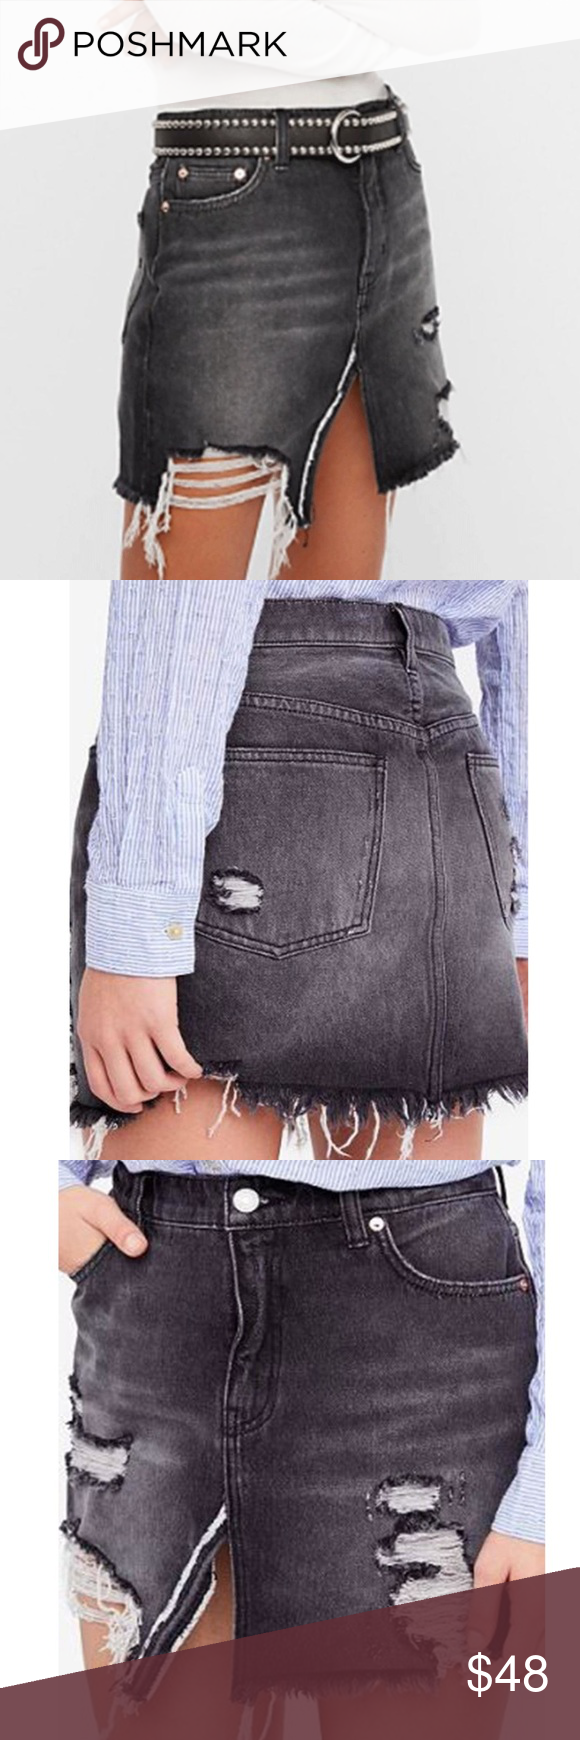 584ef4330 Free People Relaxed and Destroyed Mini Skirt 27 28 NWT faded and distressed  black and gray